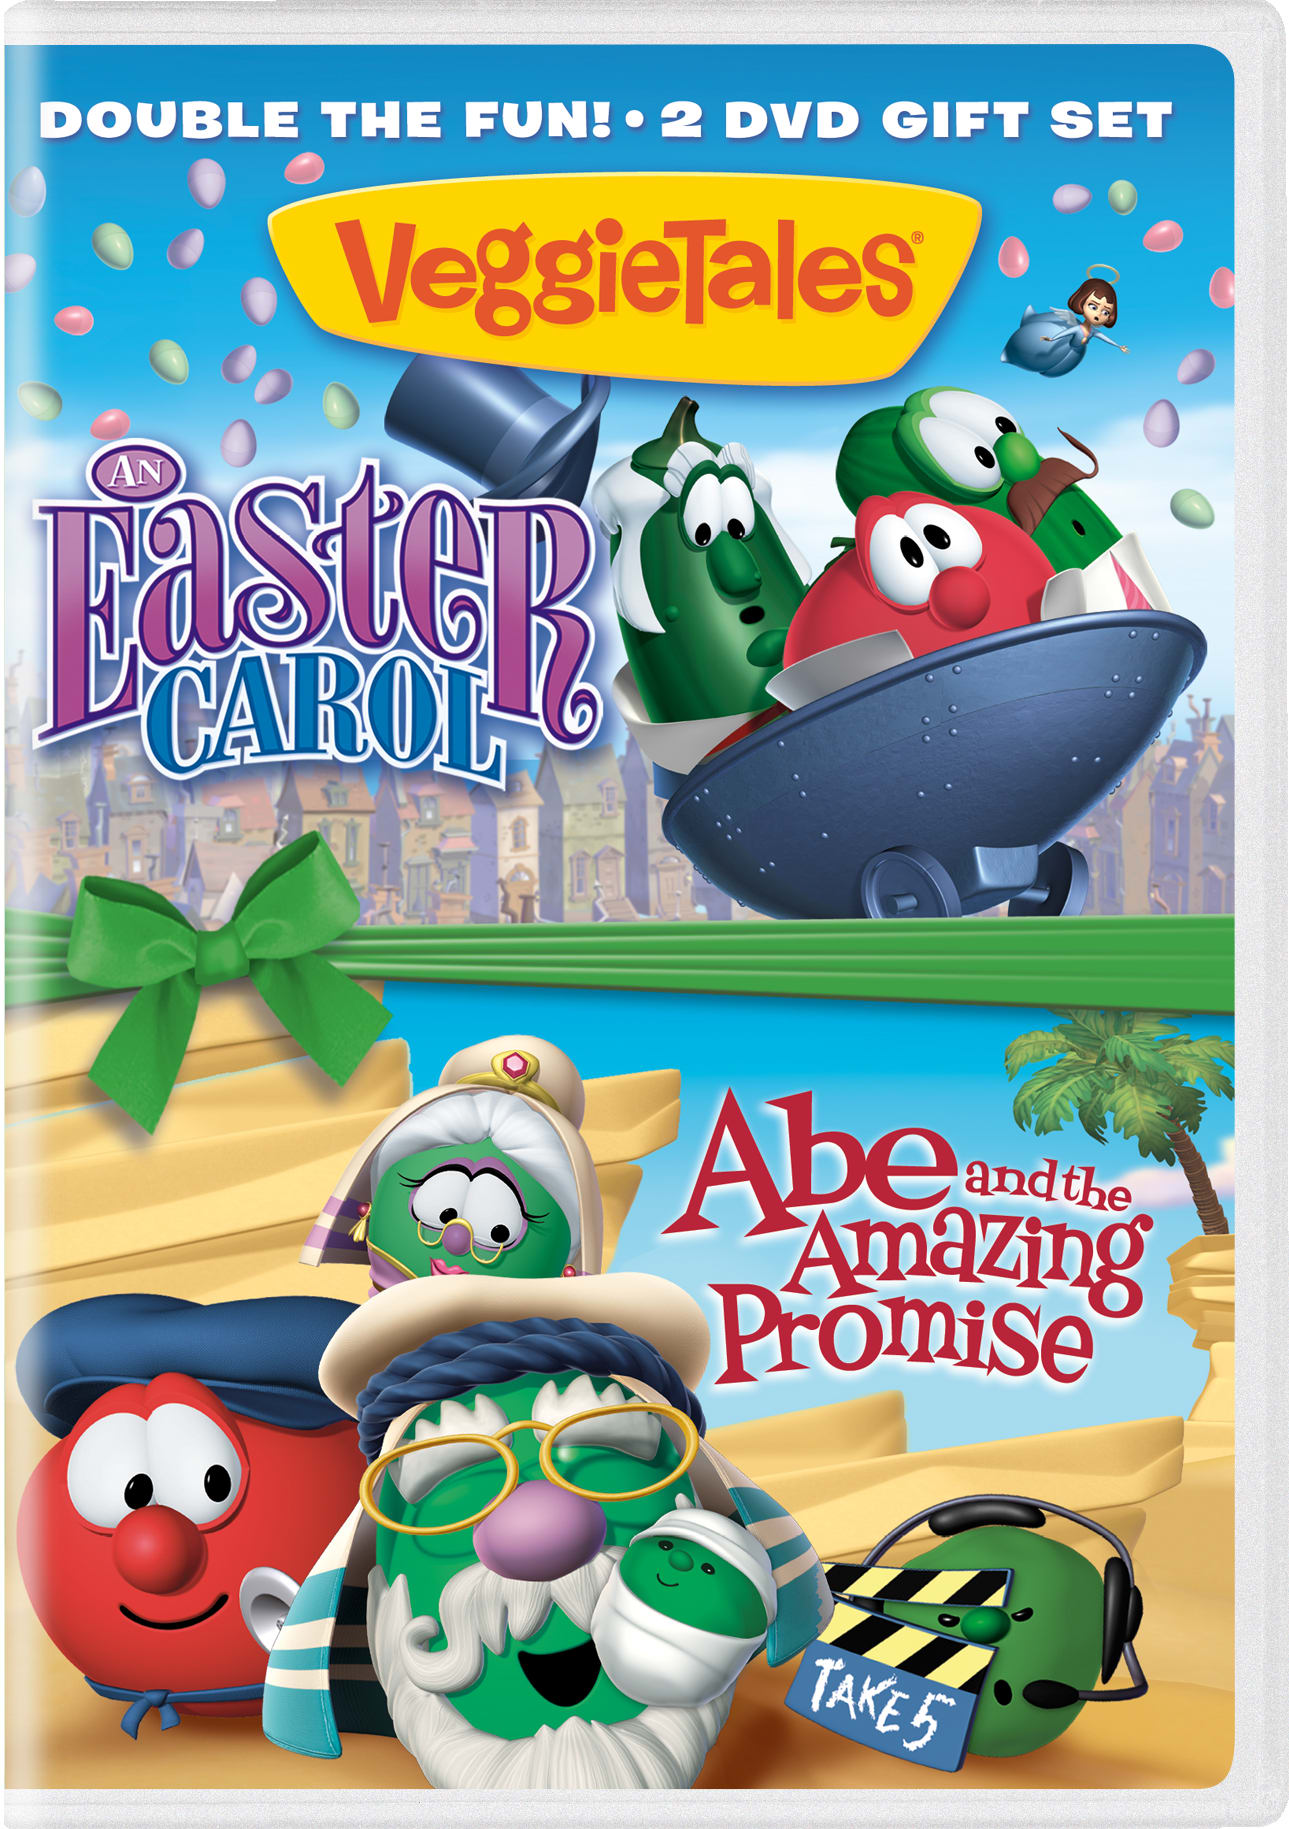 VeggieTales: An Easter Carol/Abe and the Amazing Promise [DVD]